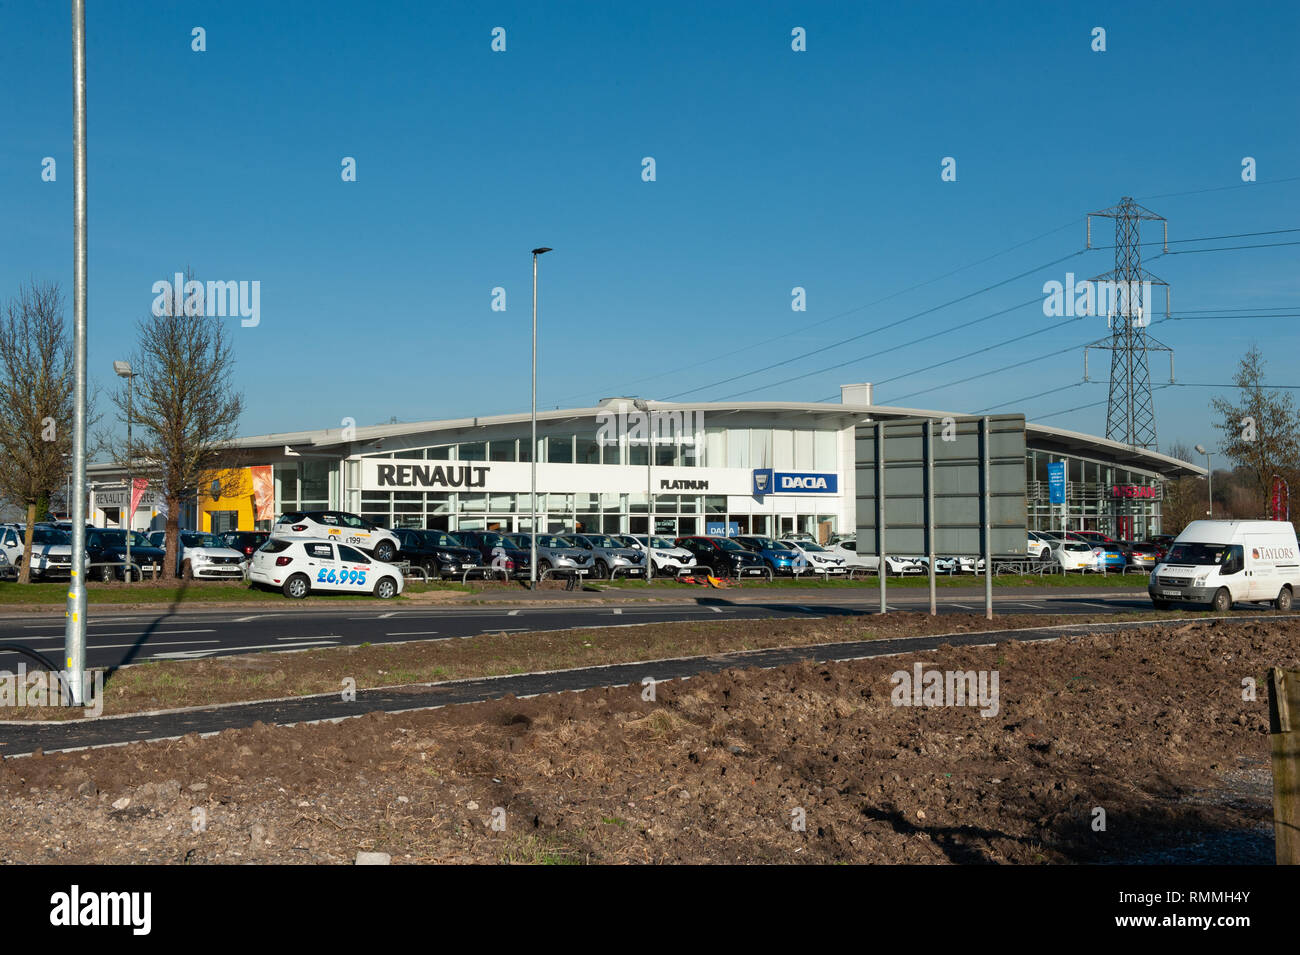 Renault, Dacia and Nissan car showrooms in Trowbridge, Wiltshire, UK. - Stock Image